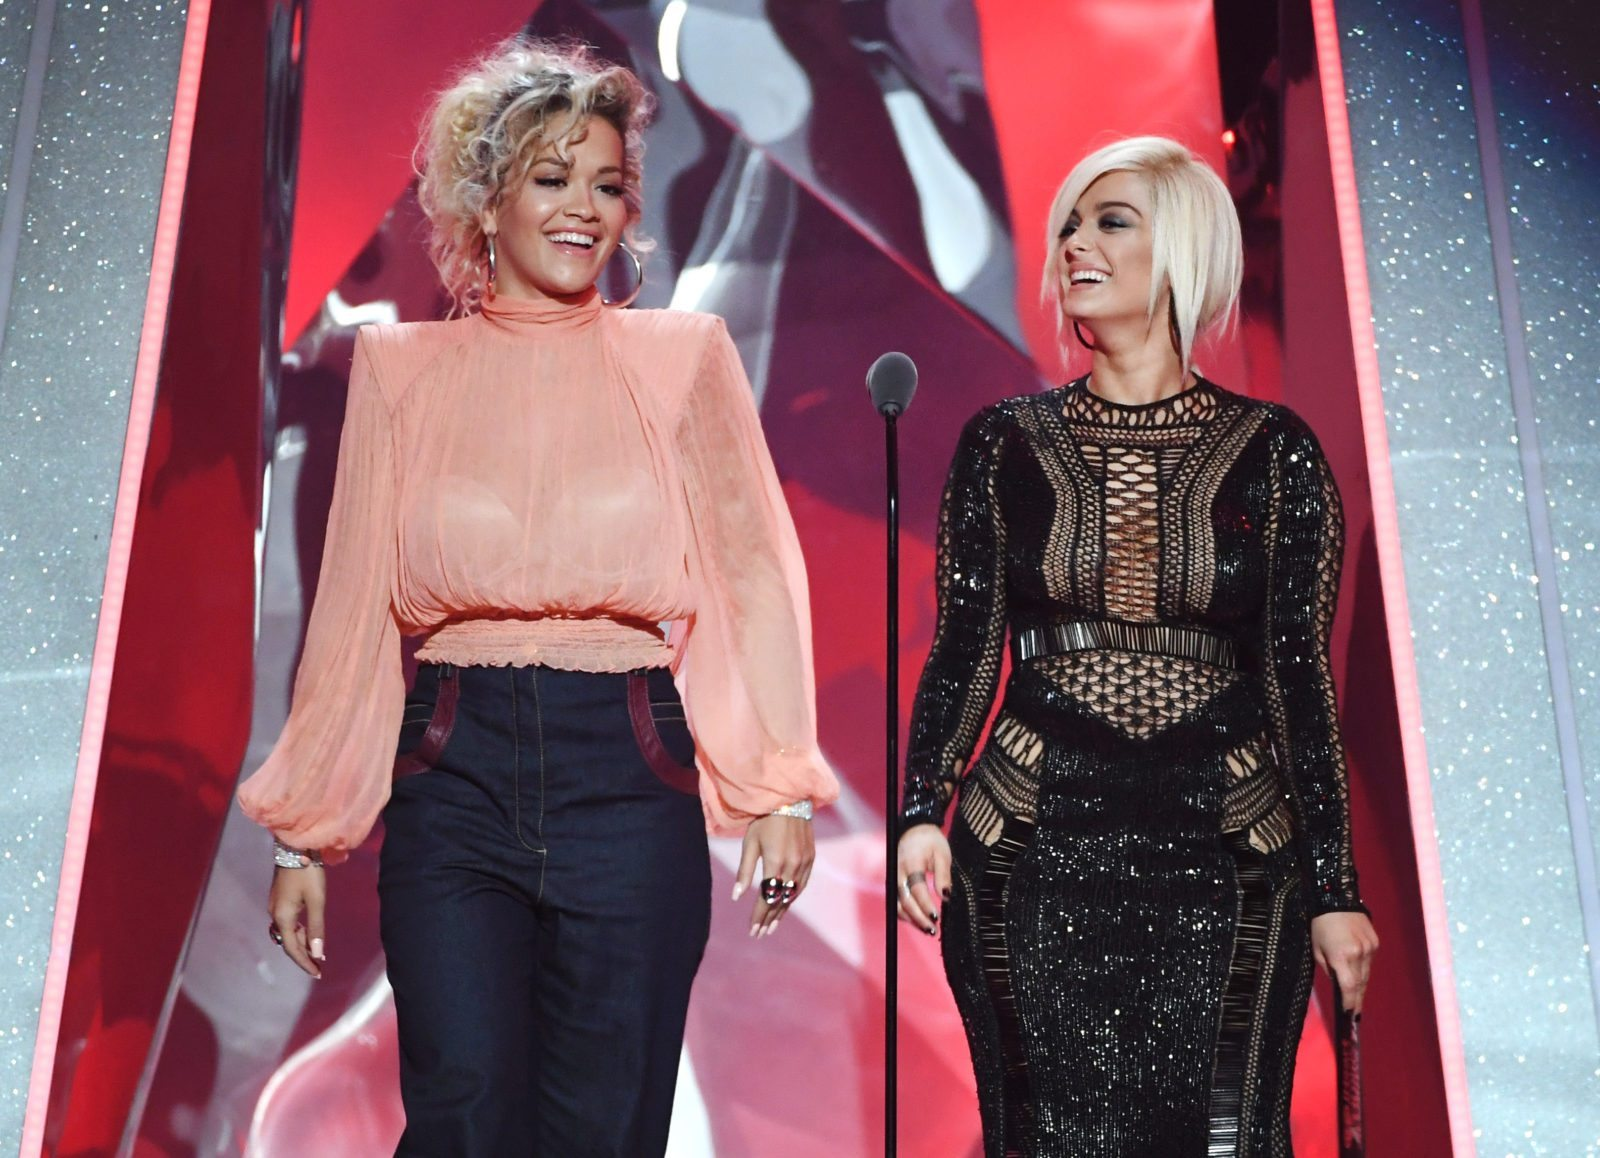 INGLEWOOD, CA - MARCH 11: Rita Ora (L) and Bebe Rexha speak onstage during the 2018 iHeartRadio Music Awards which broadcasted live on TBS, TNT, and truTV at The Forum on March 11, 2018 in Inglewood, California. (Photo by Kevin Winter/Getty Images for iHeartMedia)